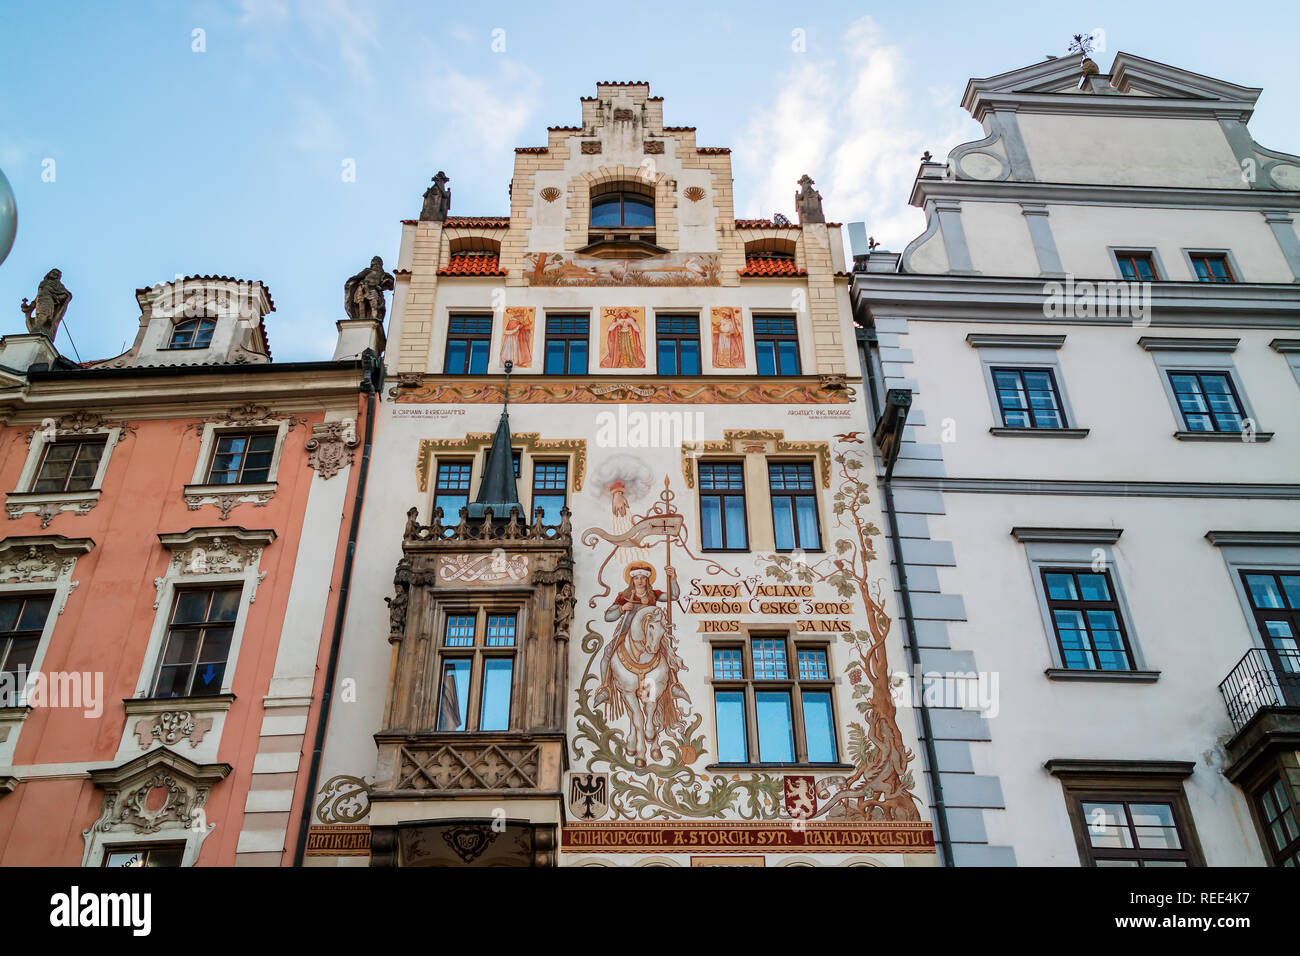 The medieval Storch House with a beautiful painting of St. Wenceslas on his horse, situated at the Old Town Square in Prague, Czech Republic. - Stock Image